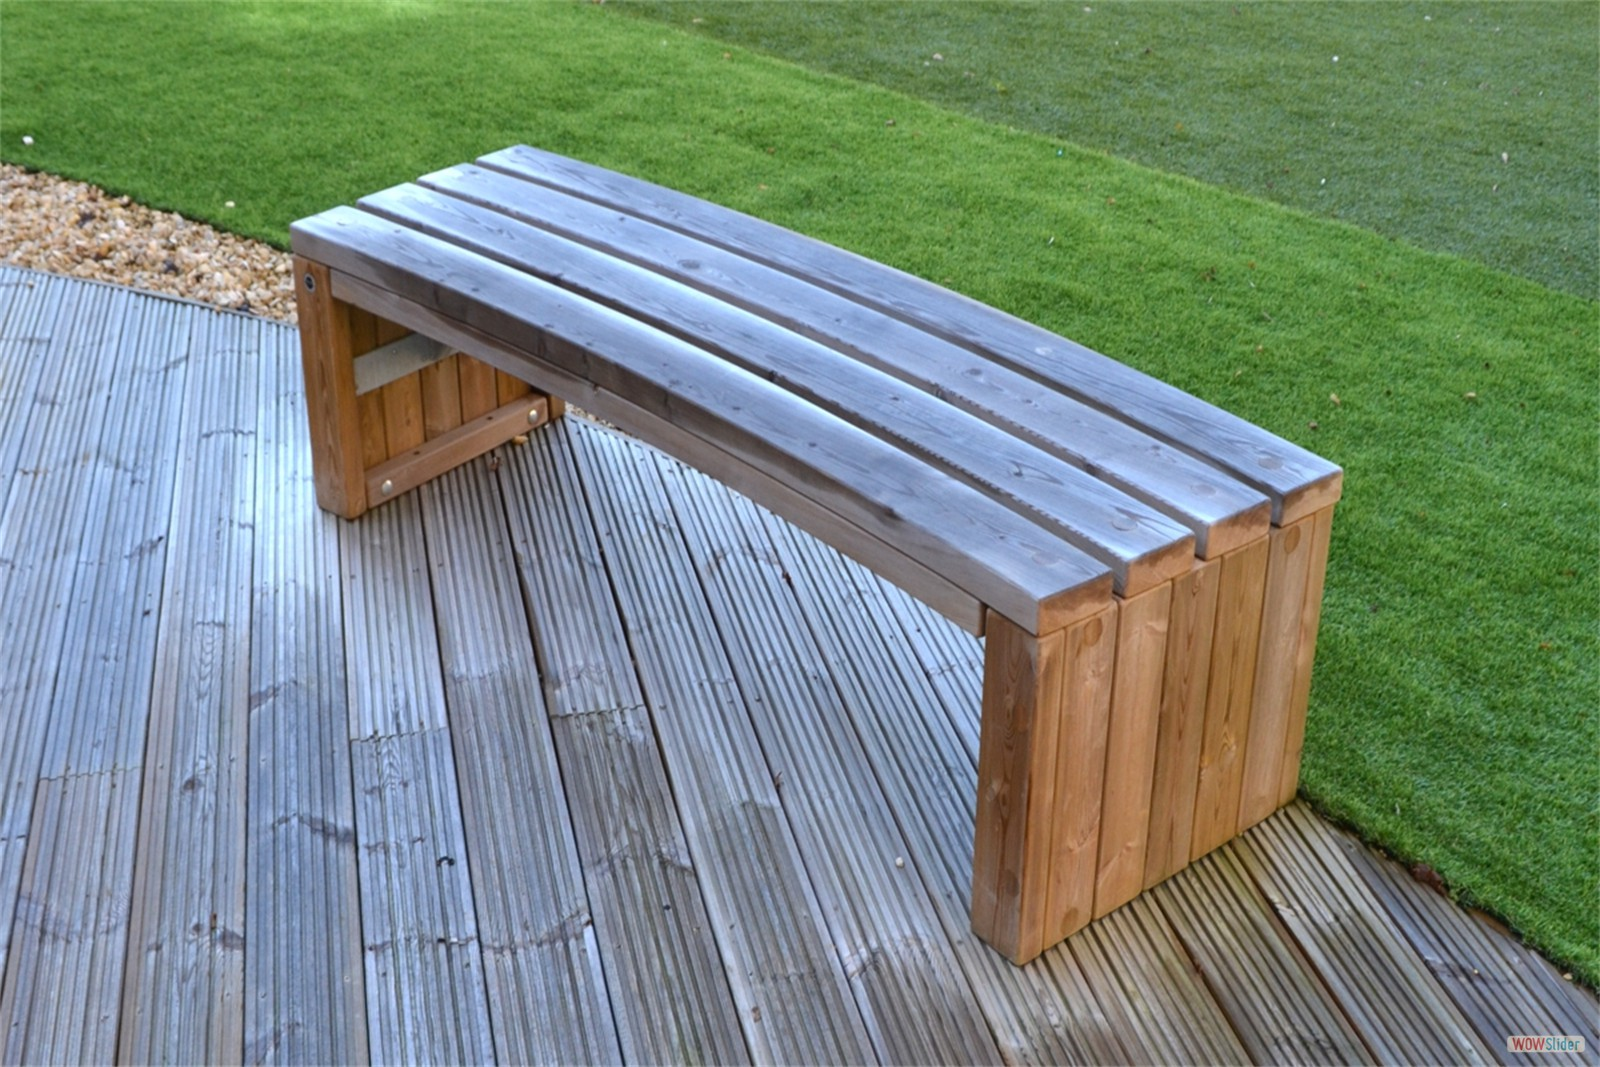 75s10 - Rochford 565 curved bench